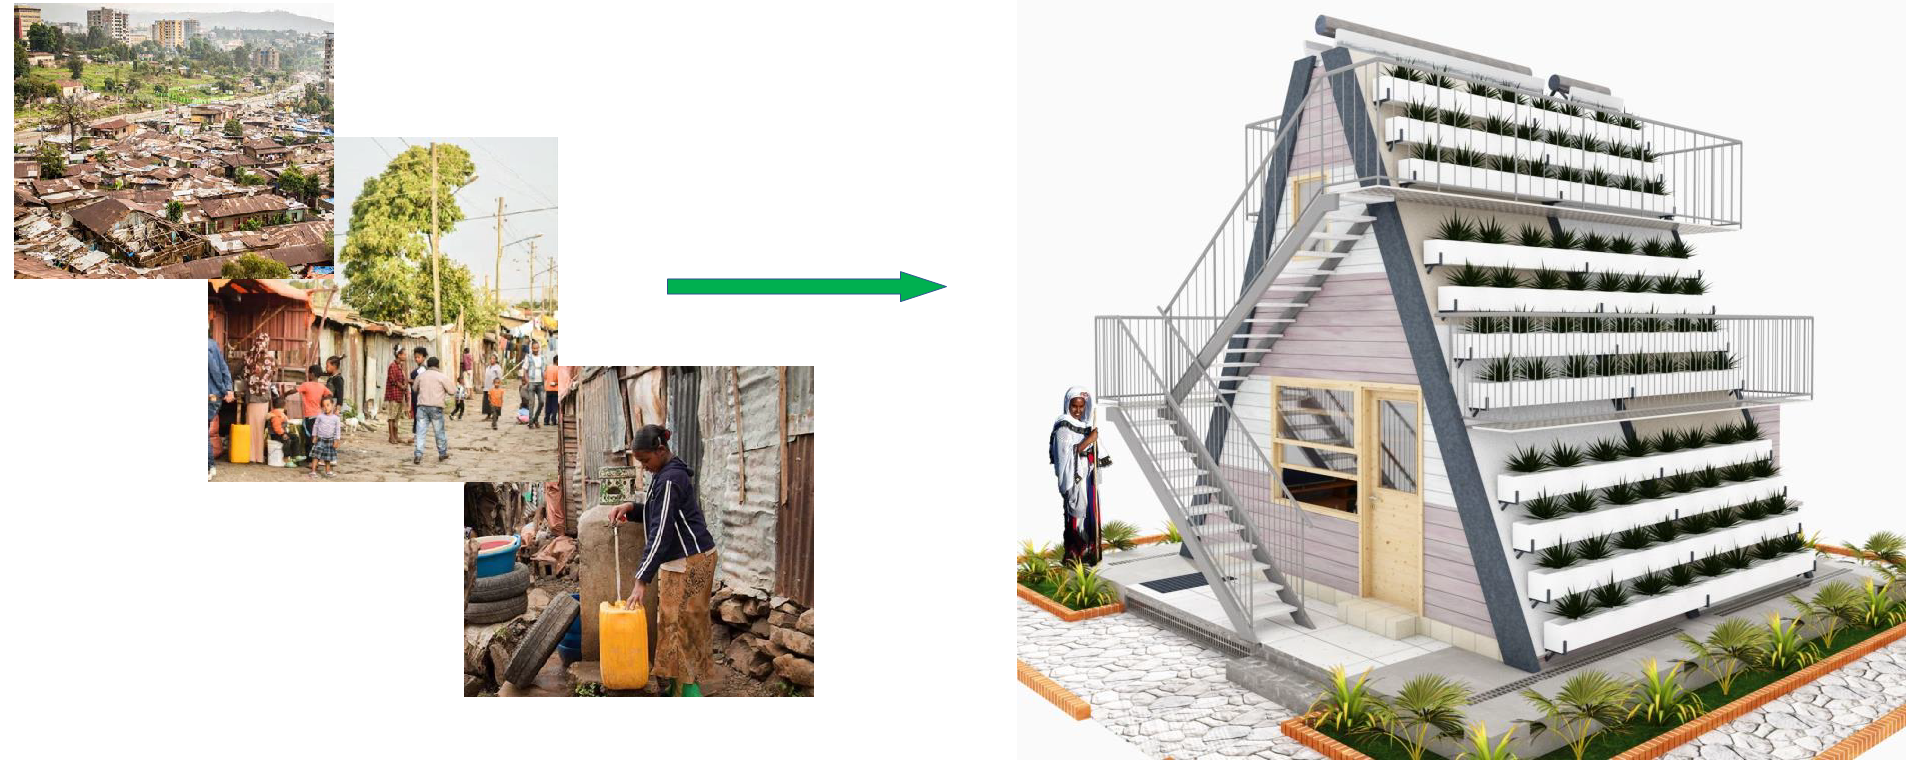 Pictures of urban sub-standard housing compared to Tridealhouse — a sustainable home for future residents